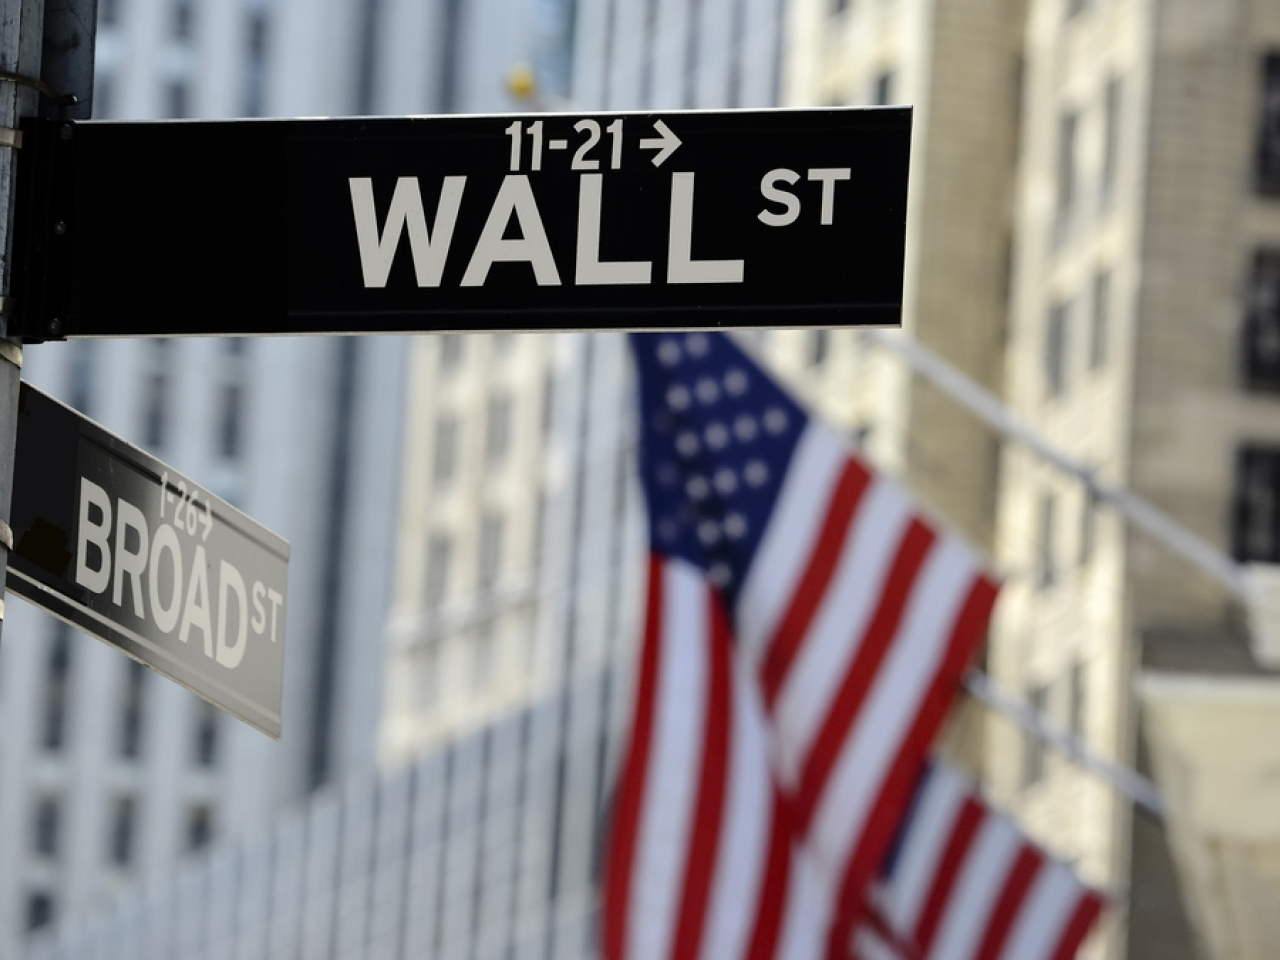 Markets have been shaky of late amid signs the recovery has slowed. Photo: Shutterstock